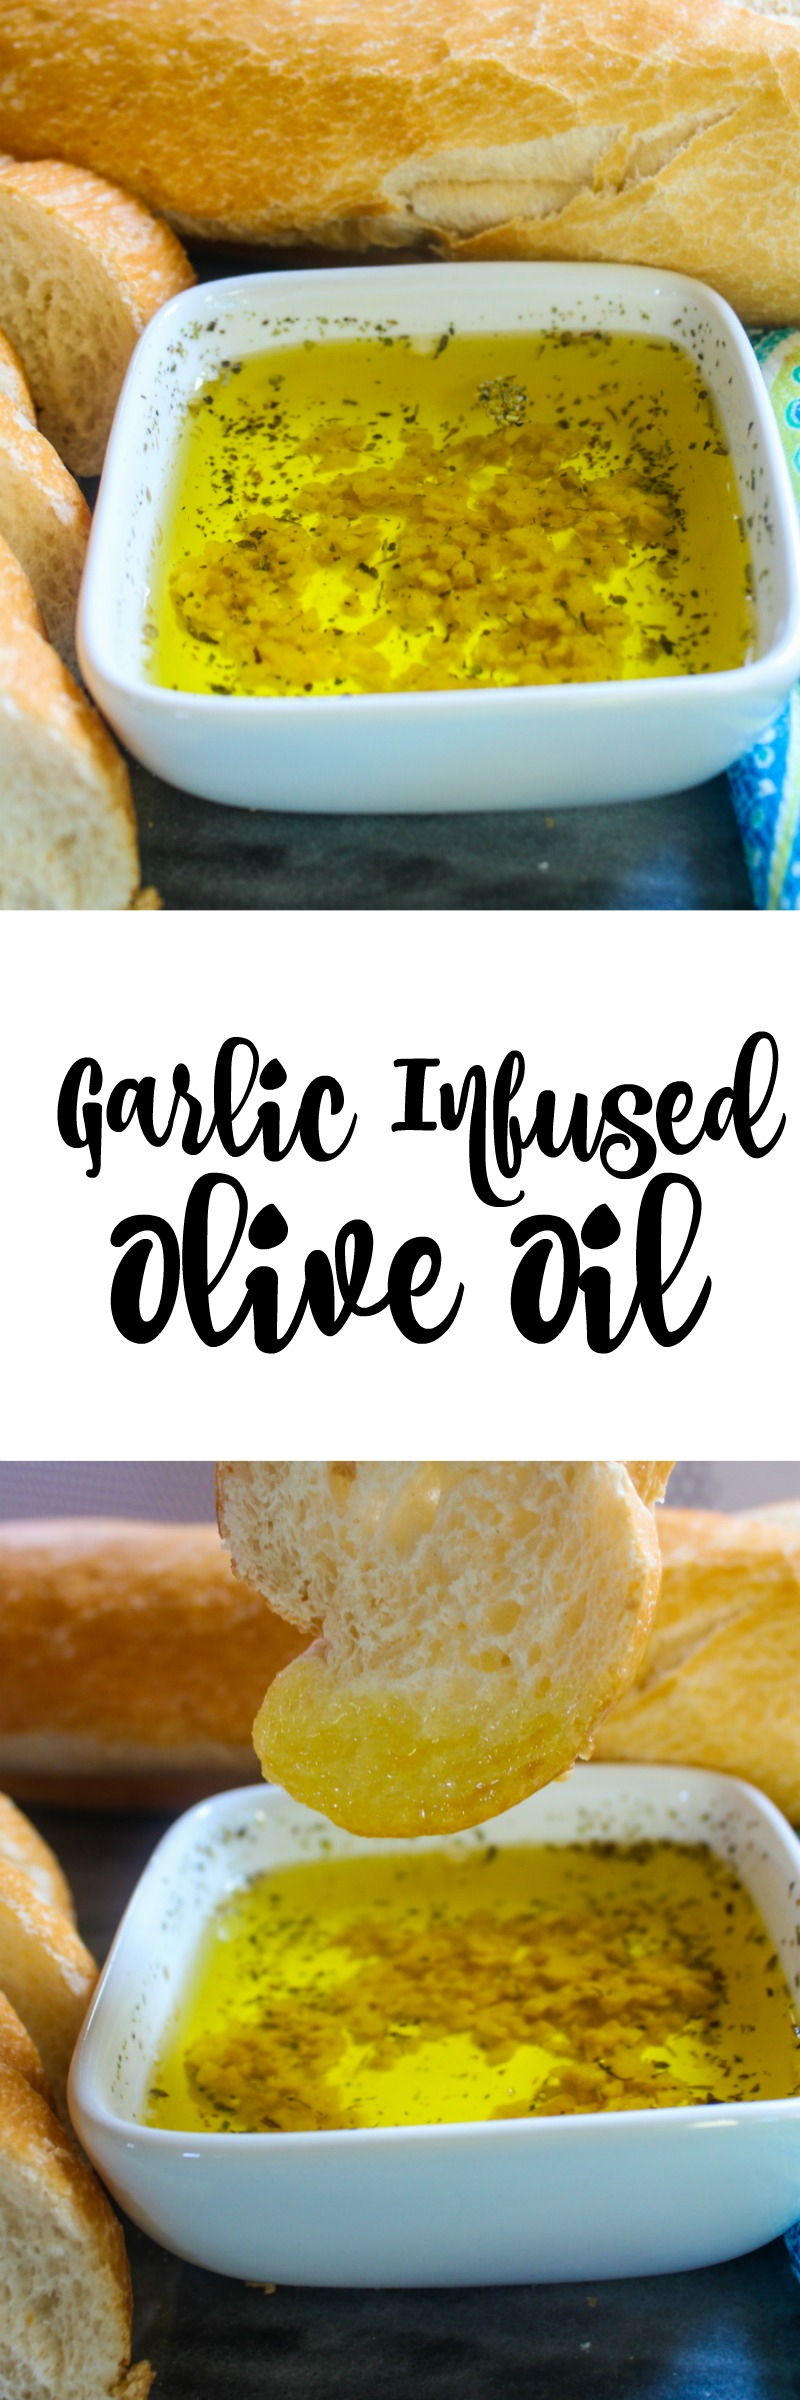 Garlic Infused Olive Oil is so easy to make and it tastes great! It is the perfect dipping sauce for crusty bread or serve it with your favorite pasta!